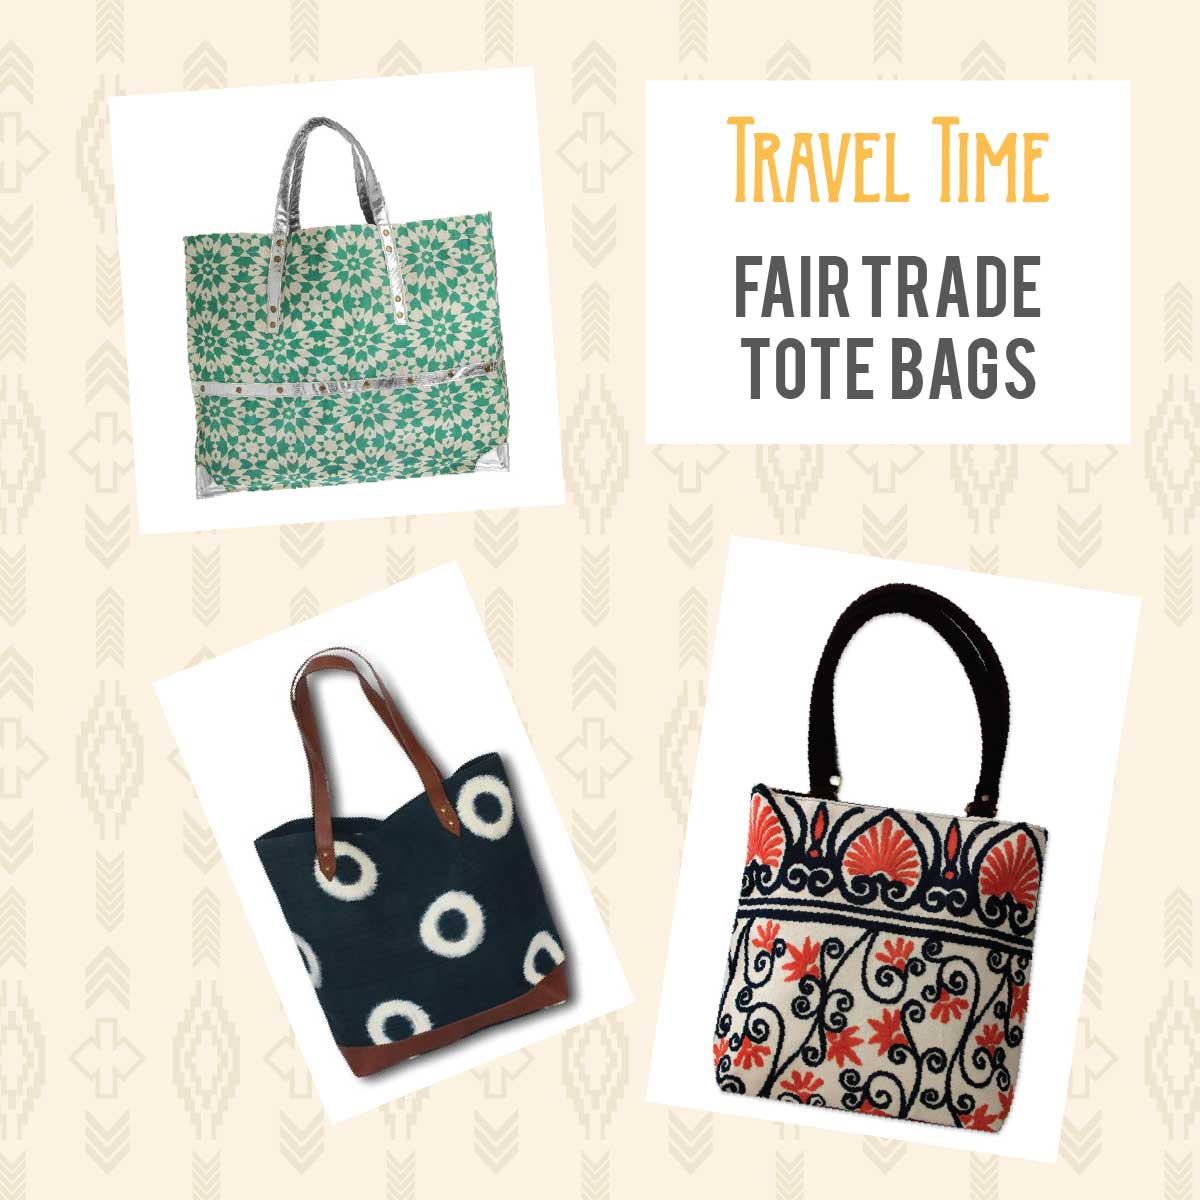 Elegant fair trade tote bags for travel